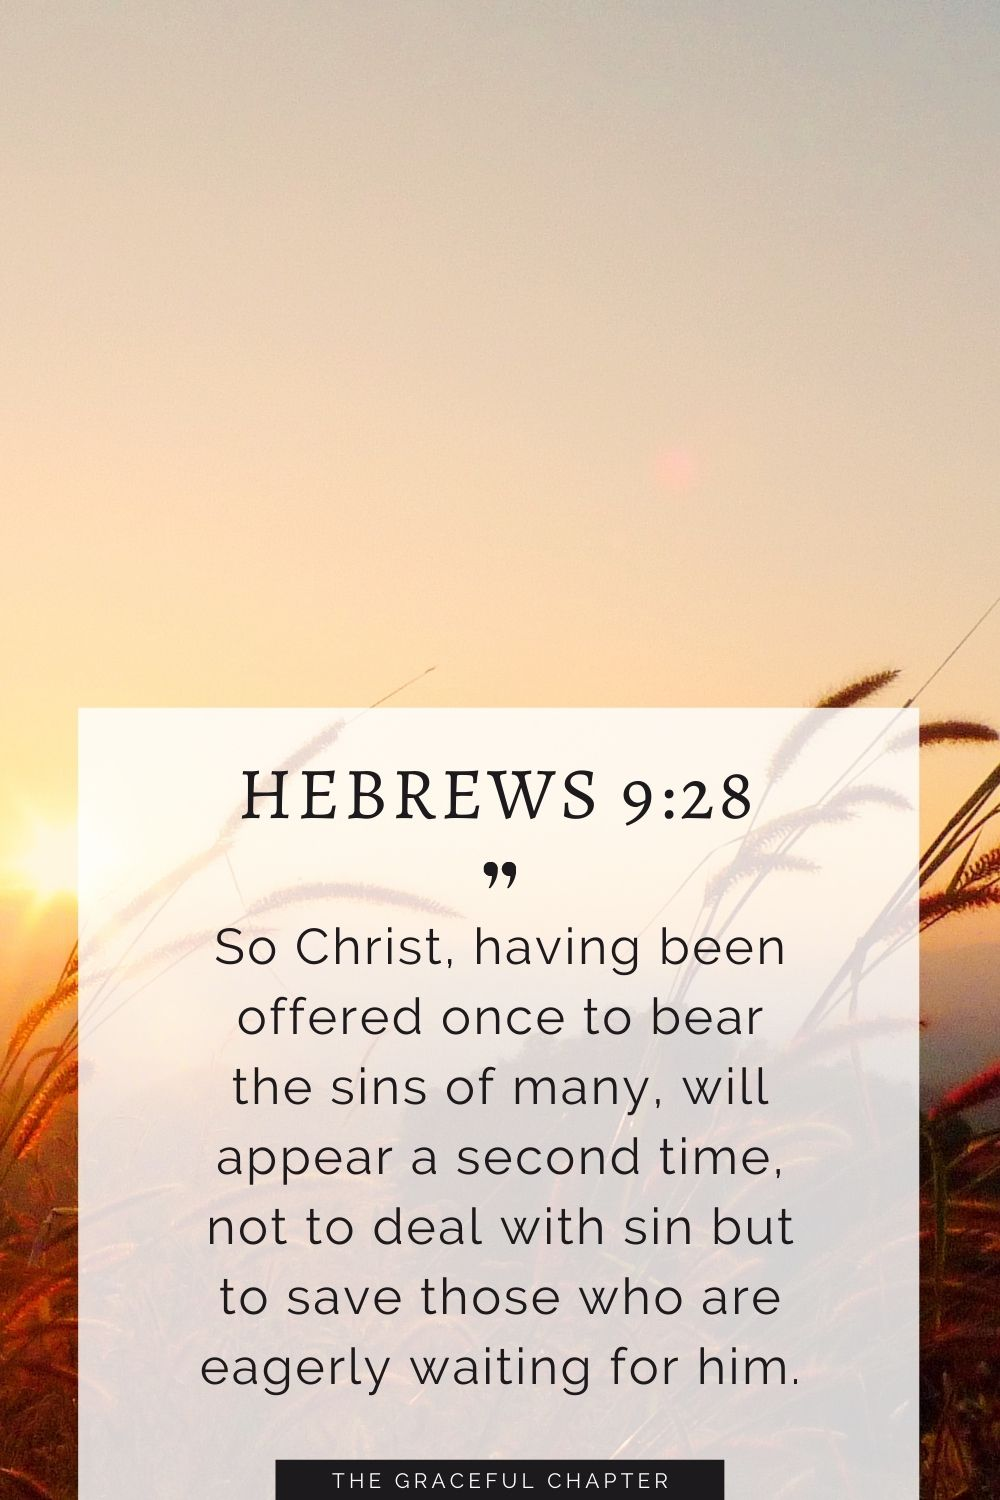 So Christ, having been offered once to bear the sins of many, will appear a second time, not to deal with sin but to save those who are eagerly waiting for him. Hebrews 9:28